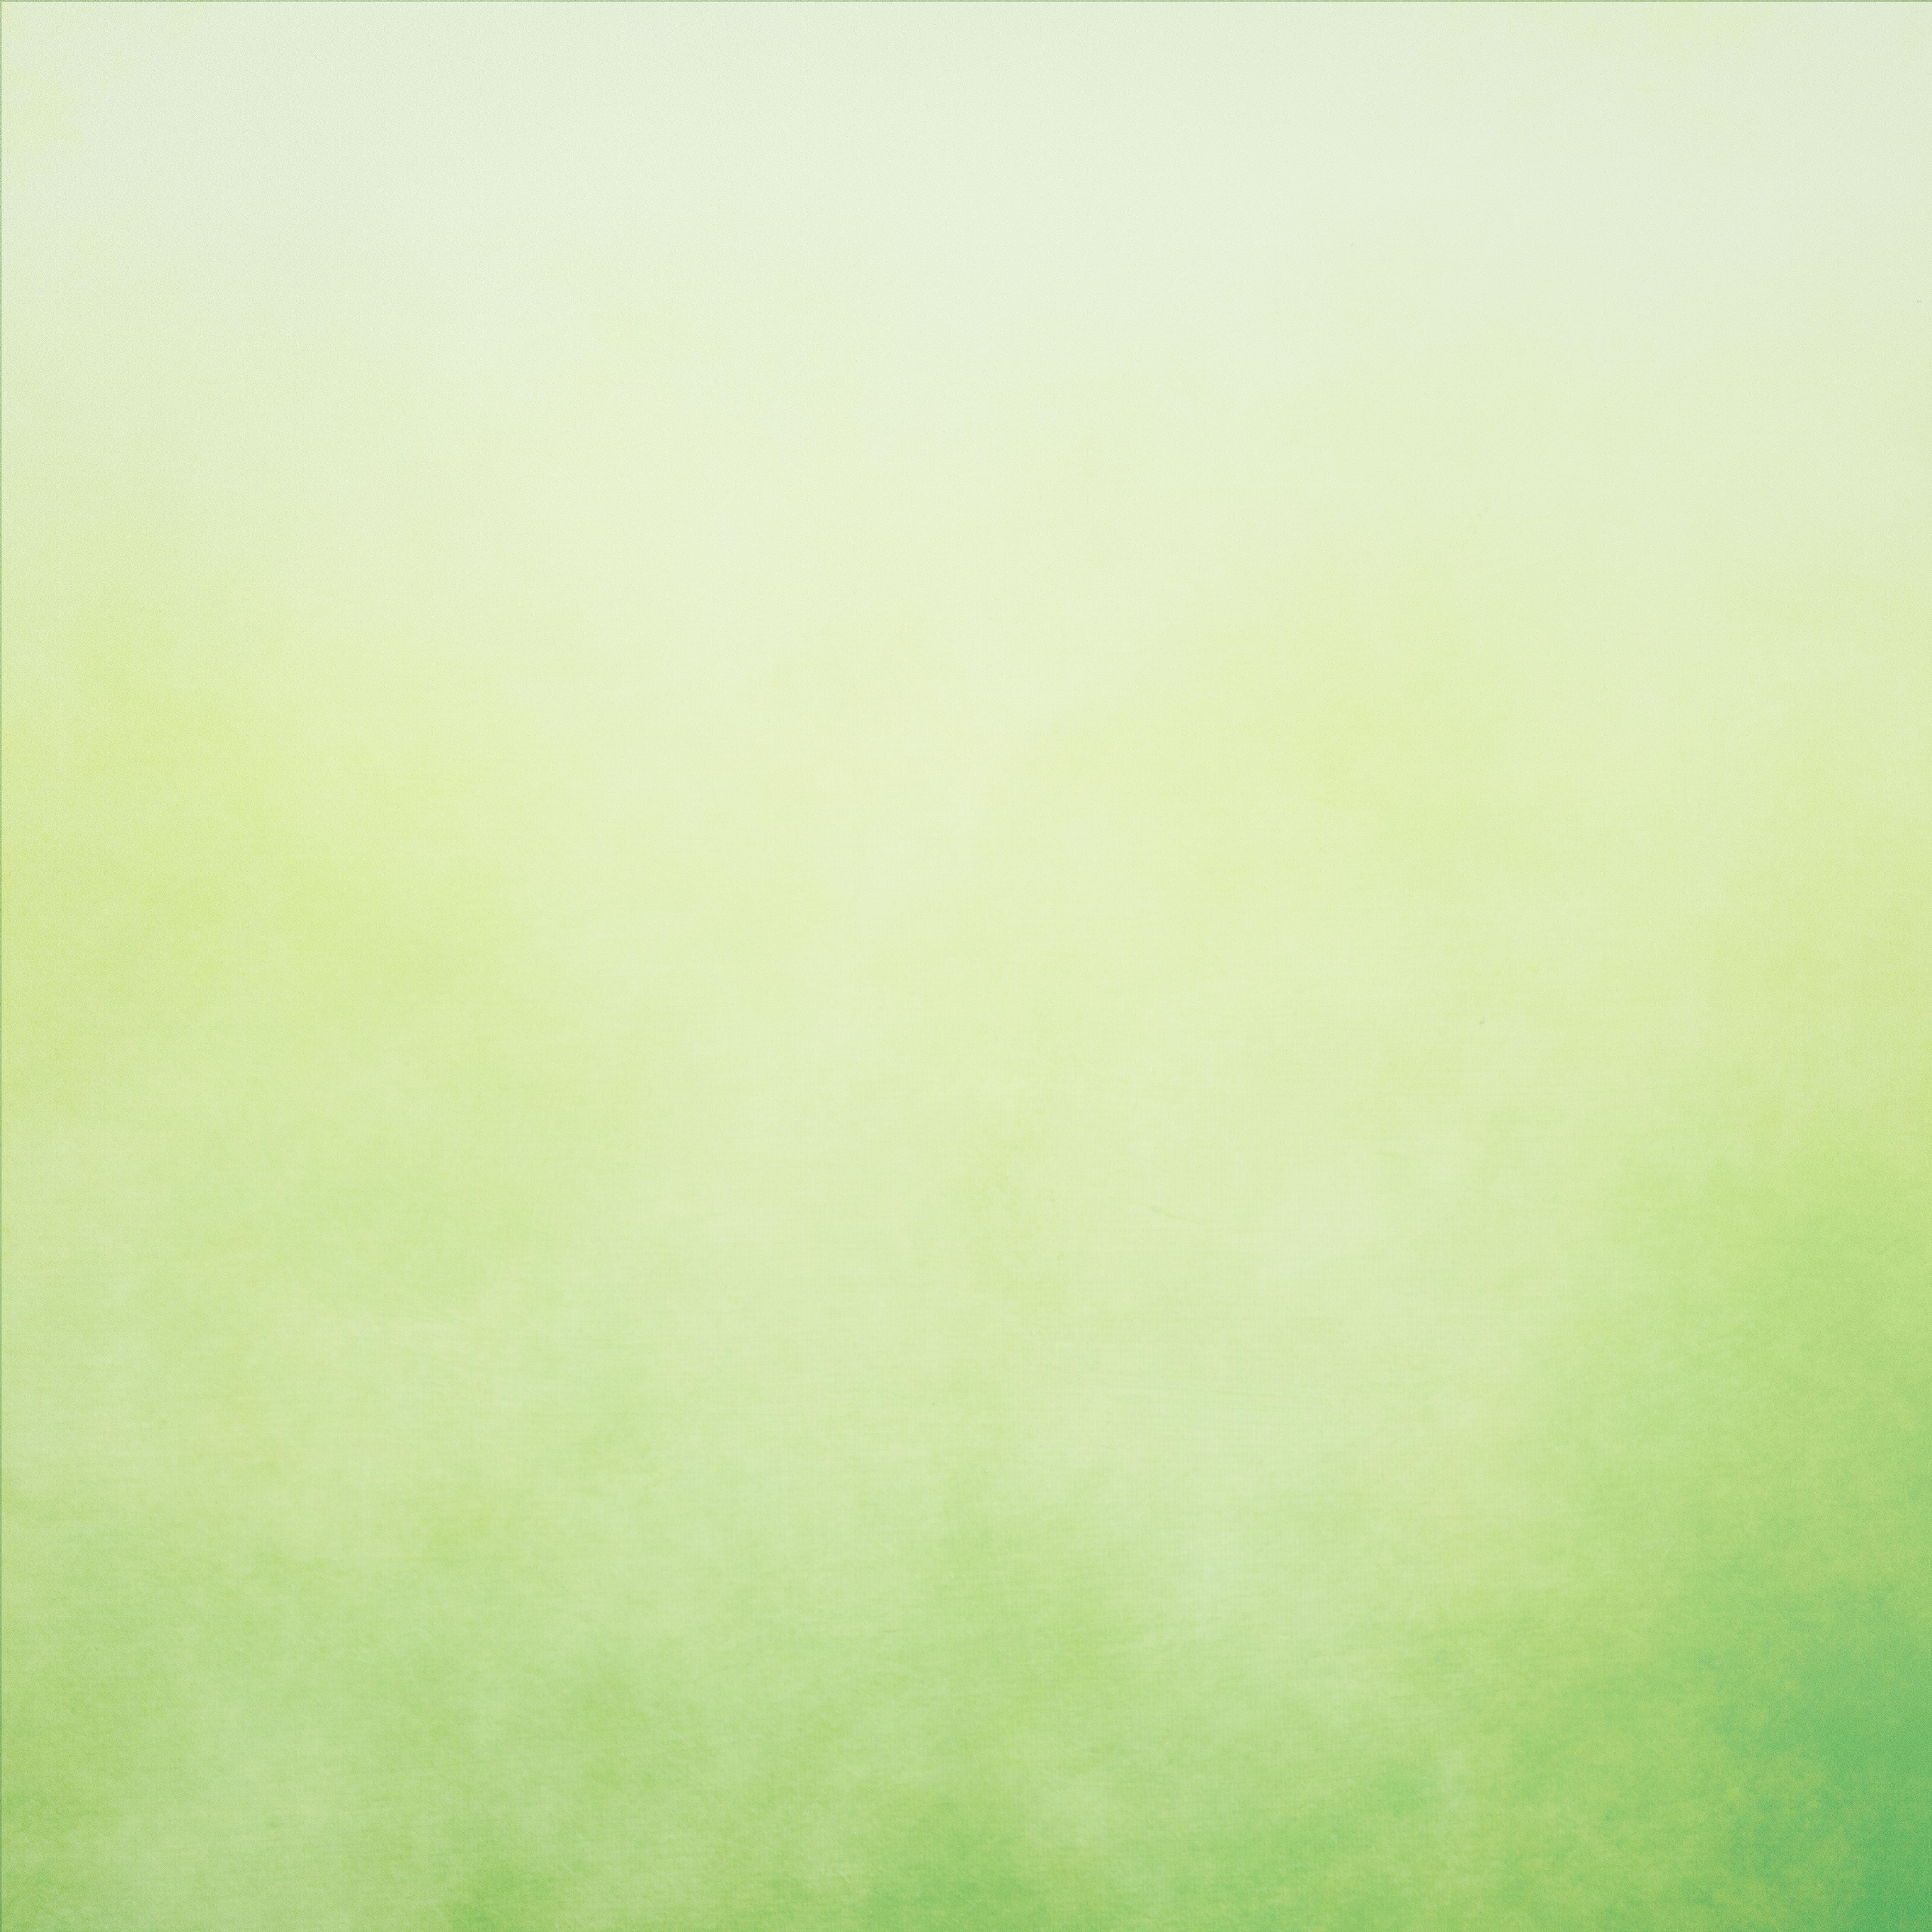 Pastel Green Background Tumblr Posted By John Cunningham